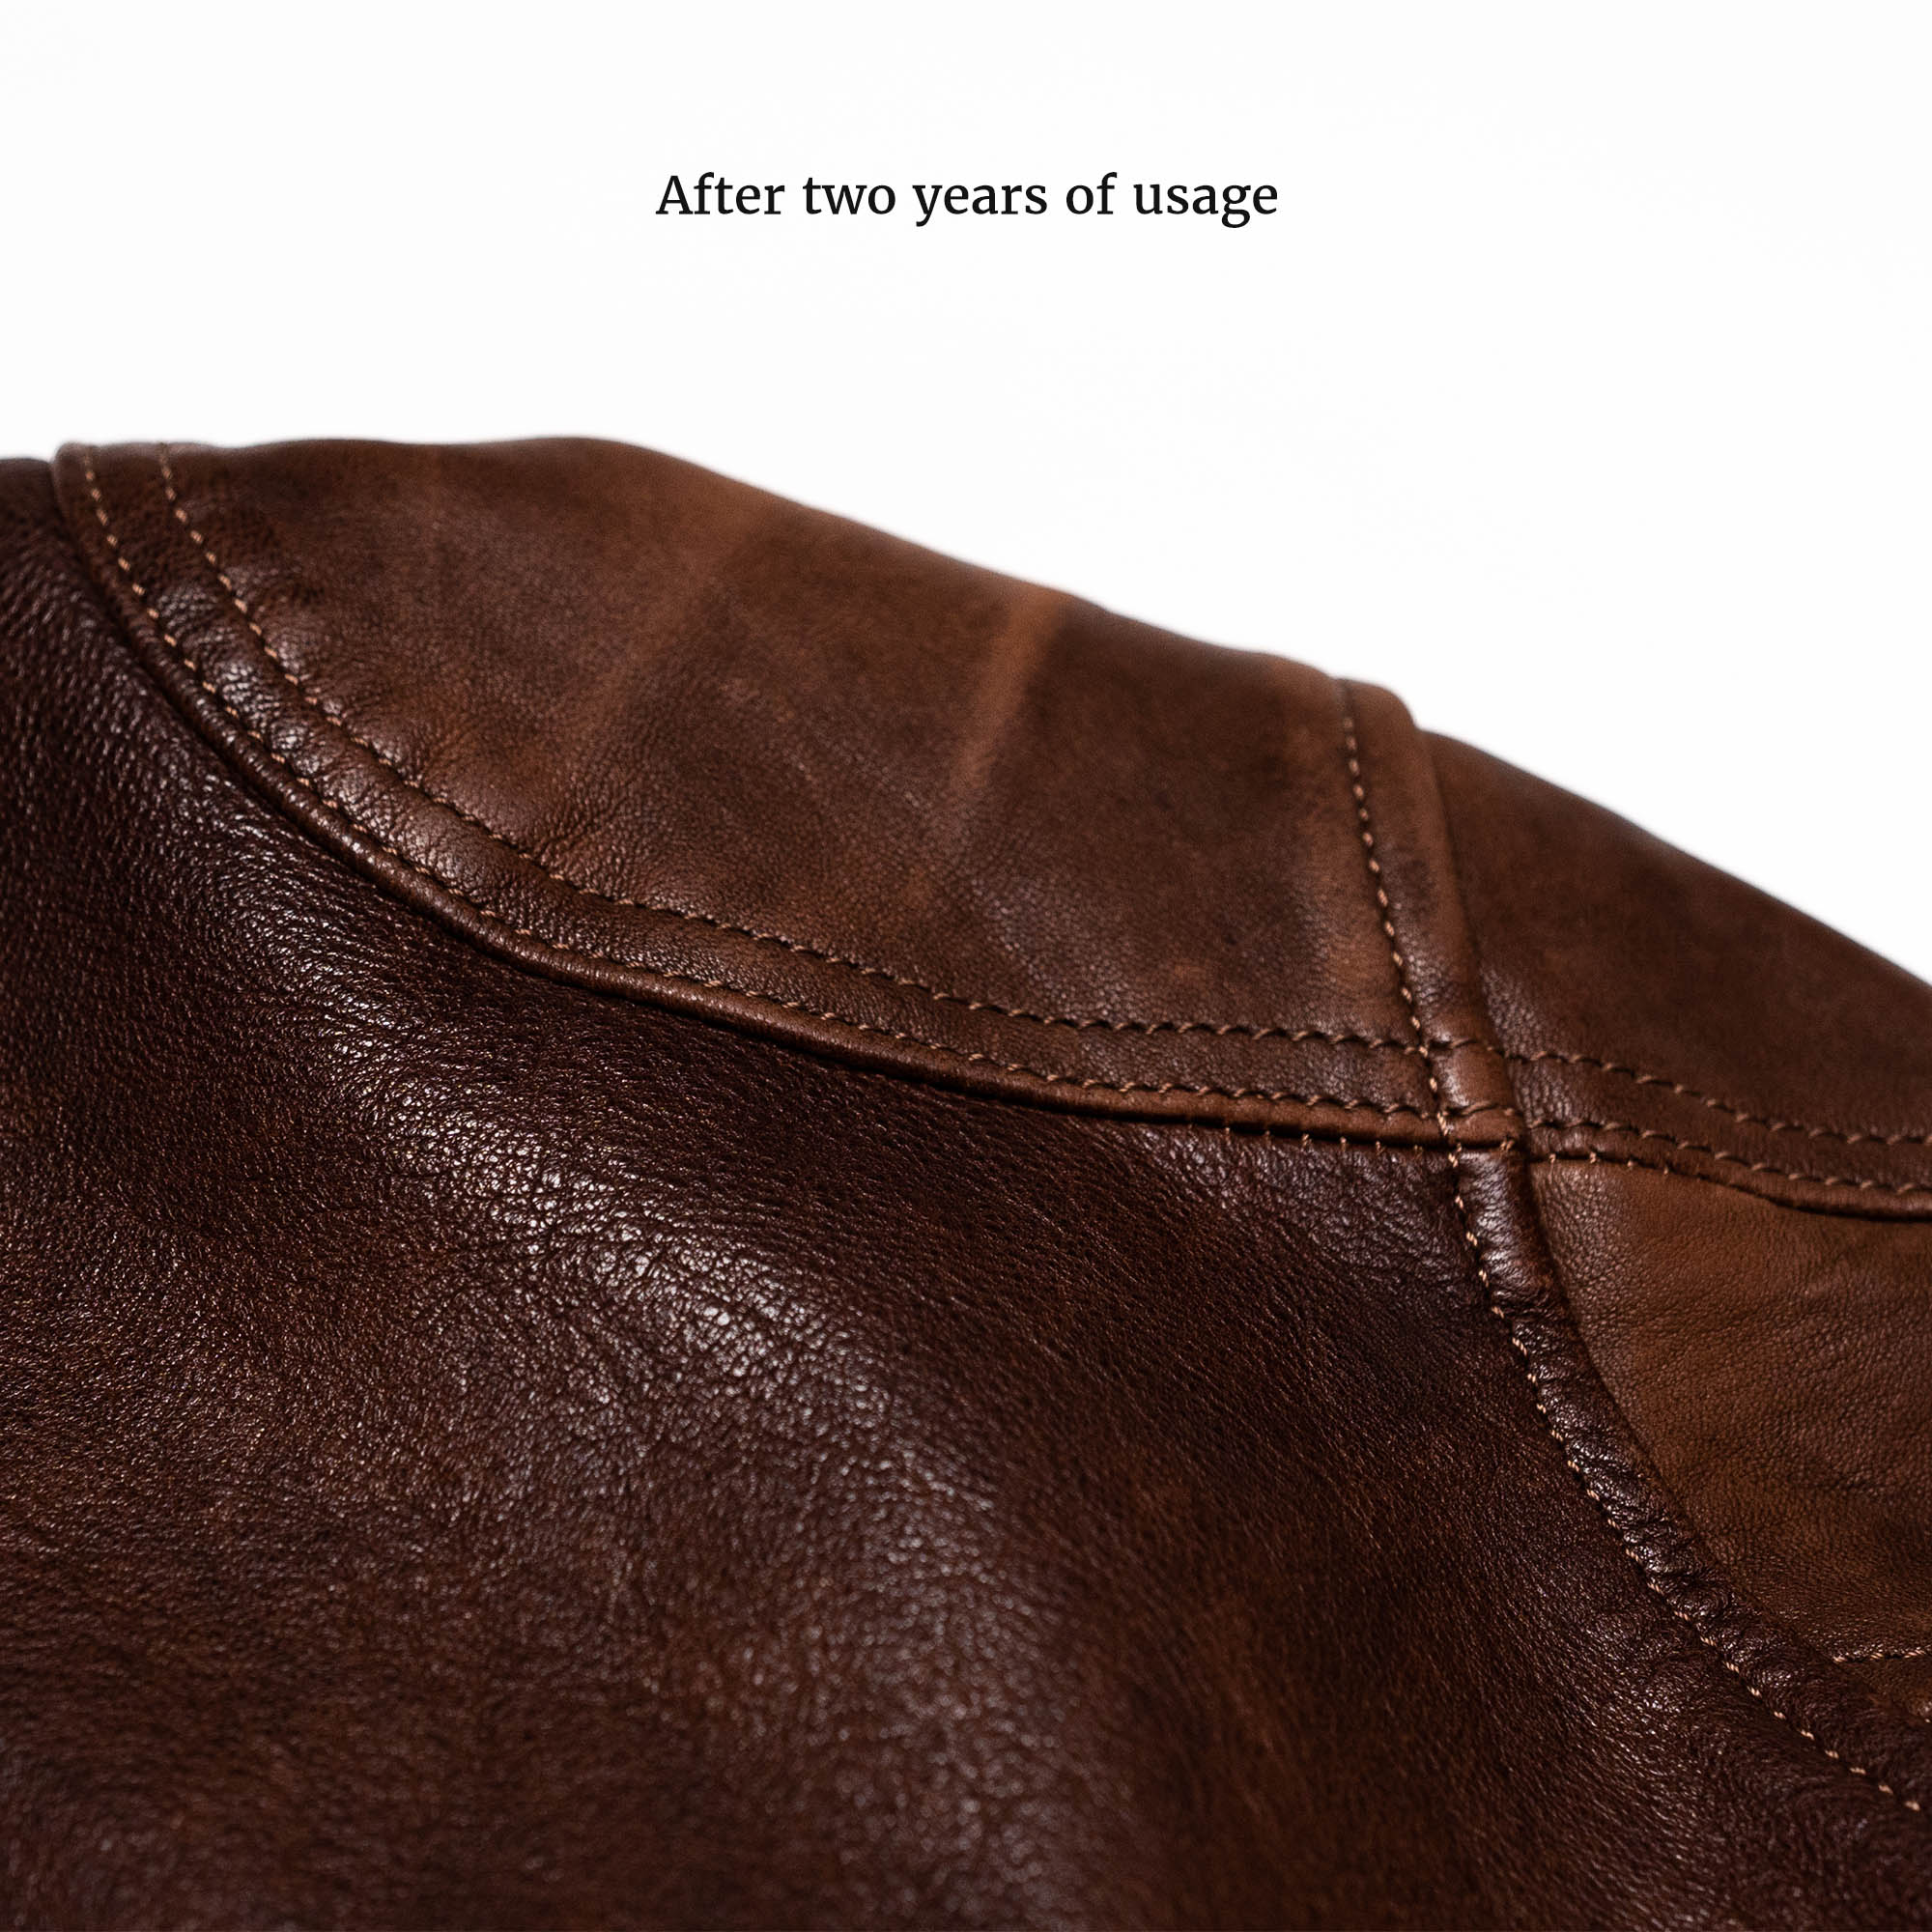 shangri-la-heritage-cafe-racer-brown-lambskin-jacket-still-life-new-shoulder-used